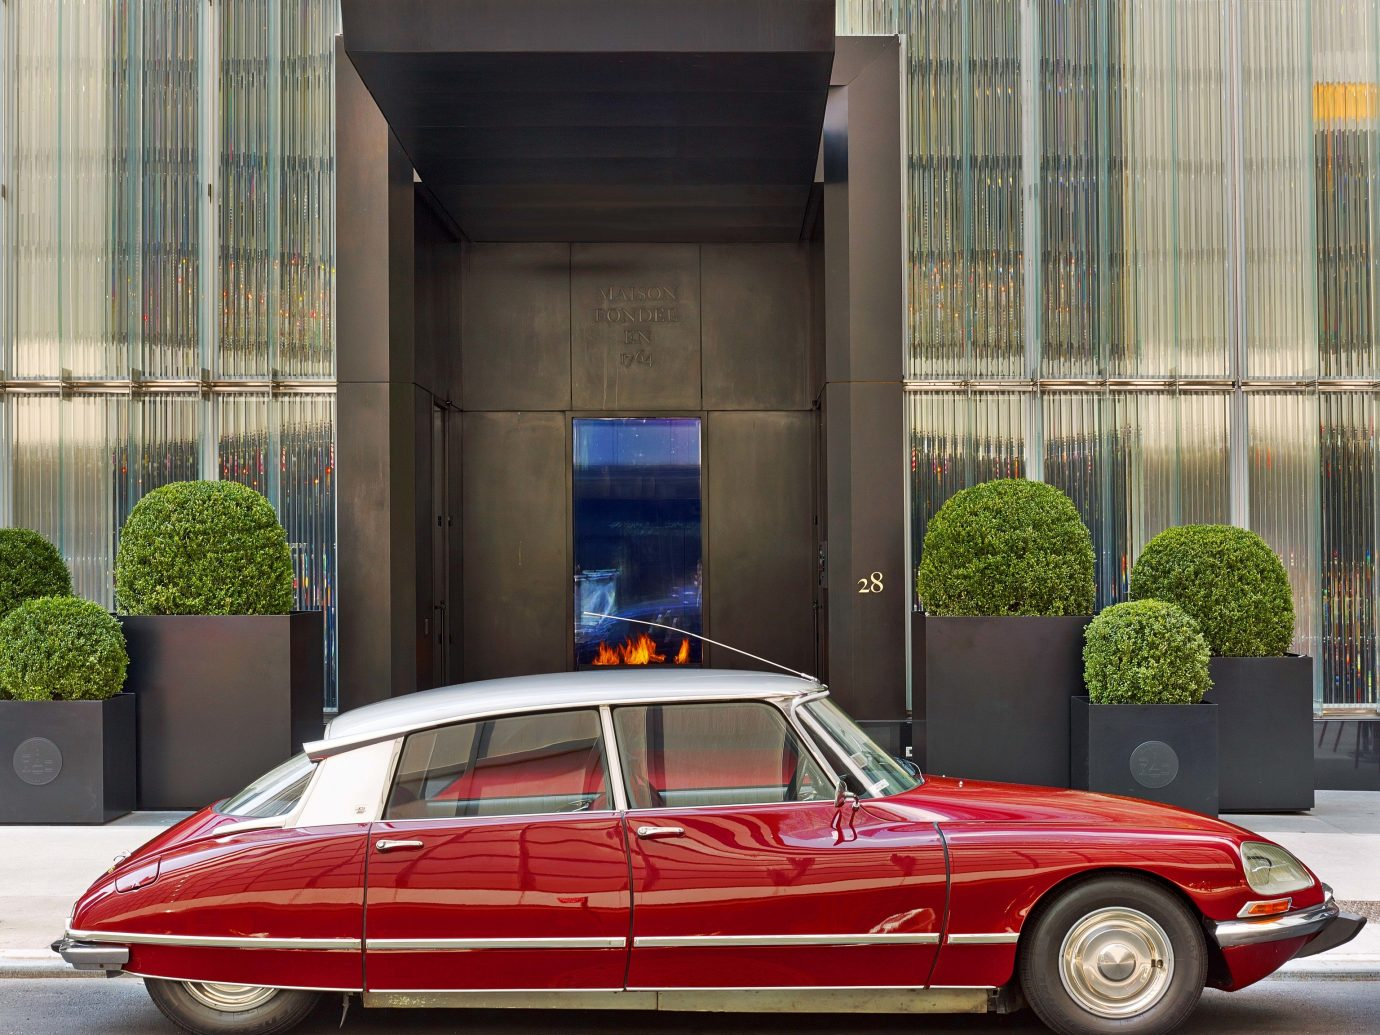 Baccarat Hotel & Residences, Best Hotels in NYC, Offbeat building outdoor car vehicle land vehicle red luxury vehicle automotive design automobile make automotive exterior parked sedan performance car antique car Classic vintage car curb